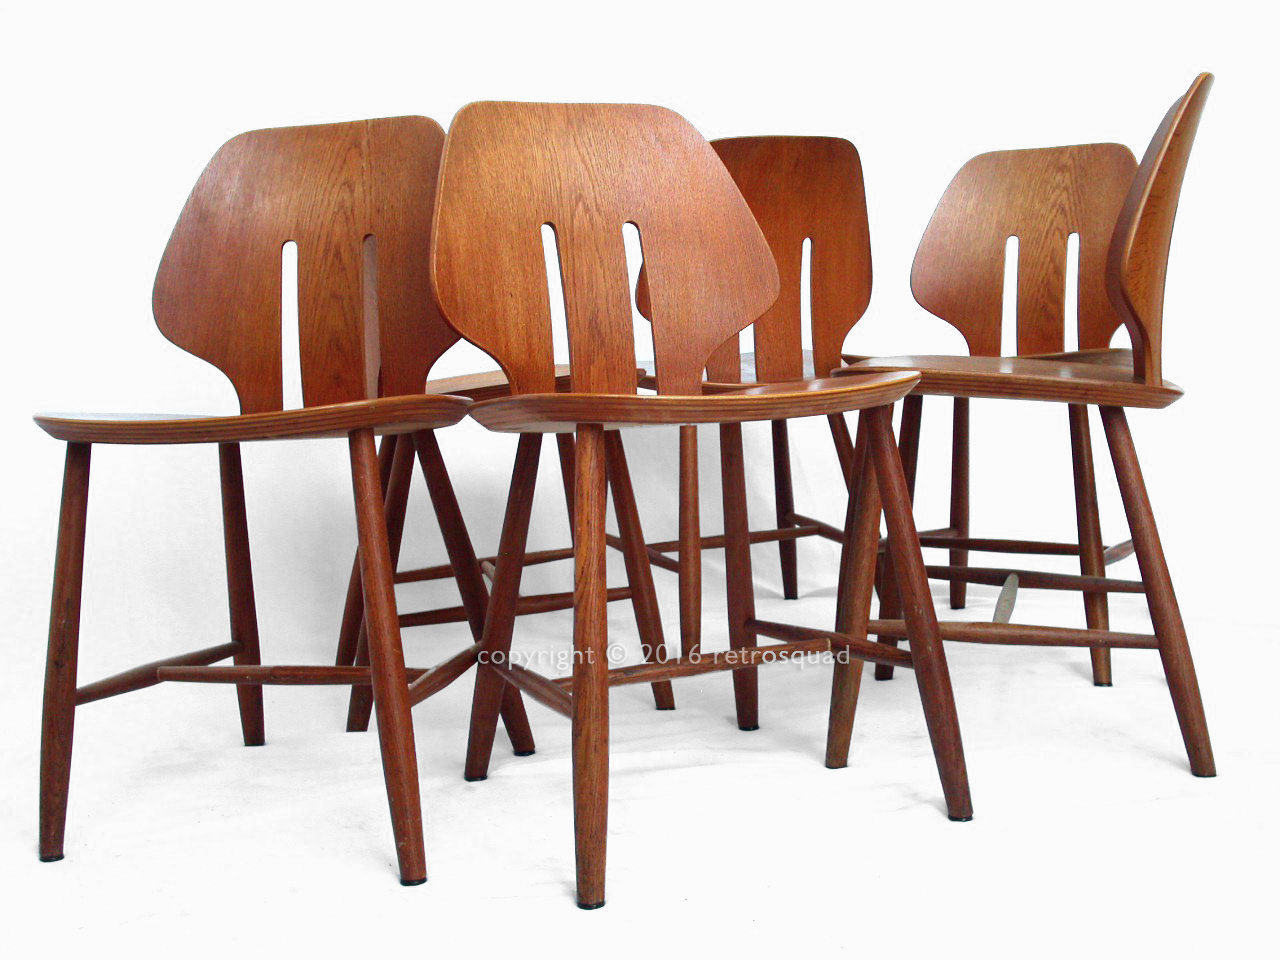 6 Modern Dining Chairs By Ejvind A. Johanss For FDB Mobler Vintage 1960 02